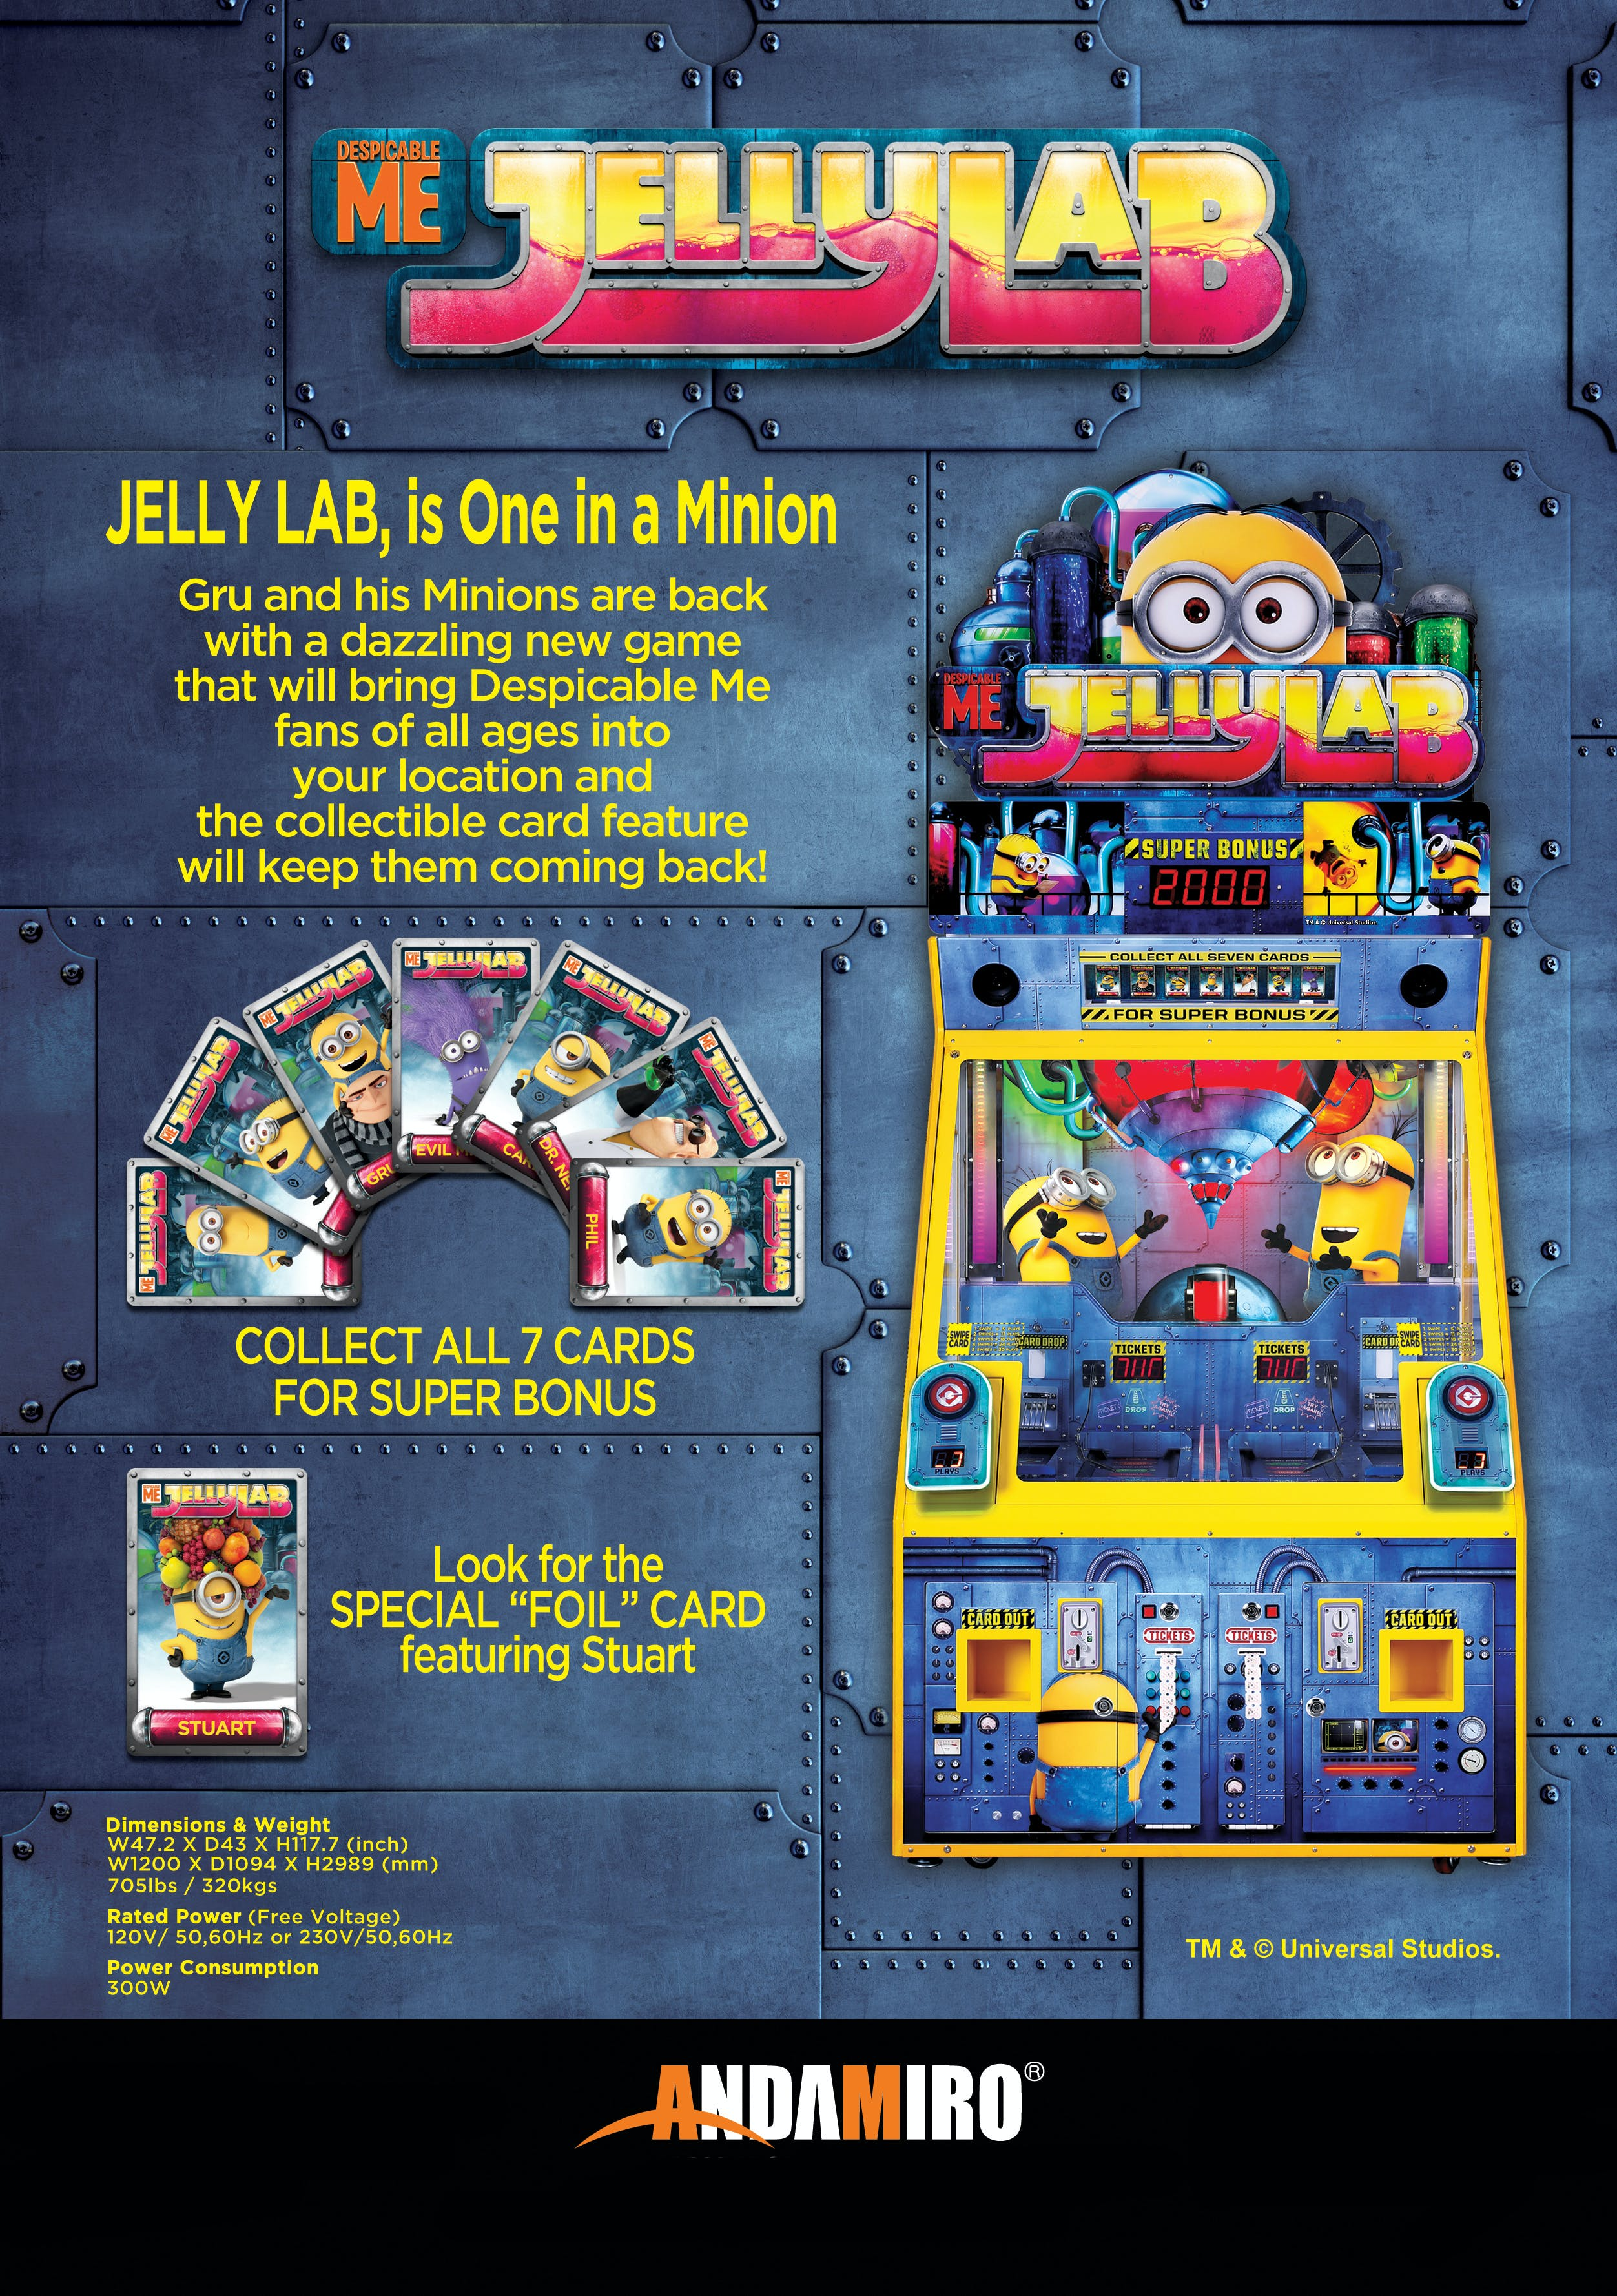 Jelly Lab - sold by Betson Enterprises